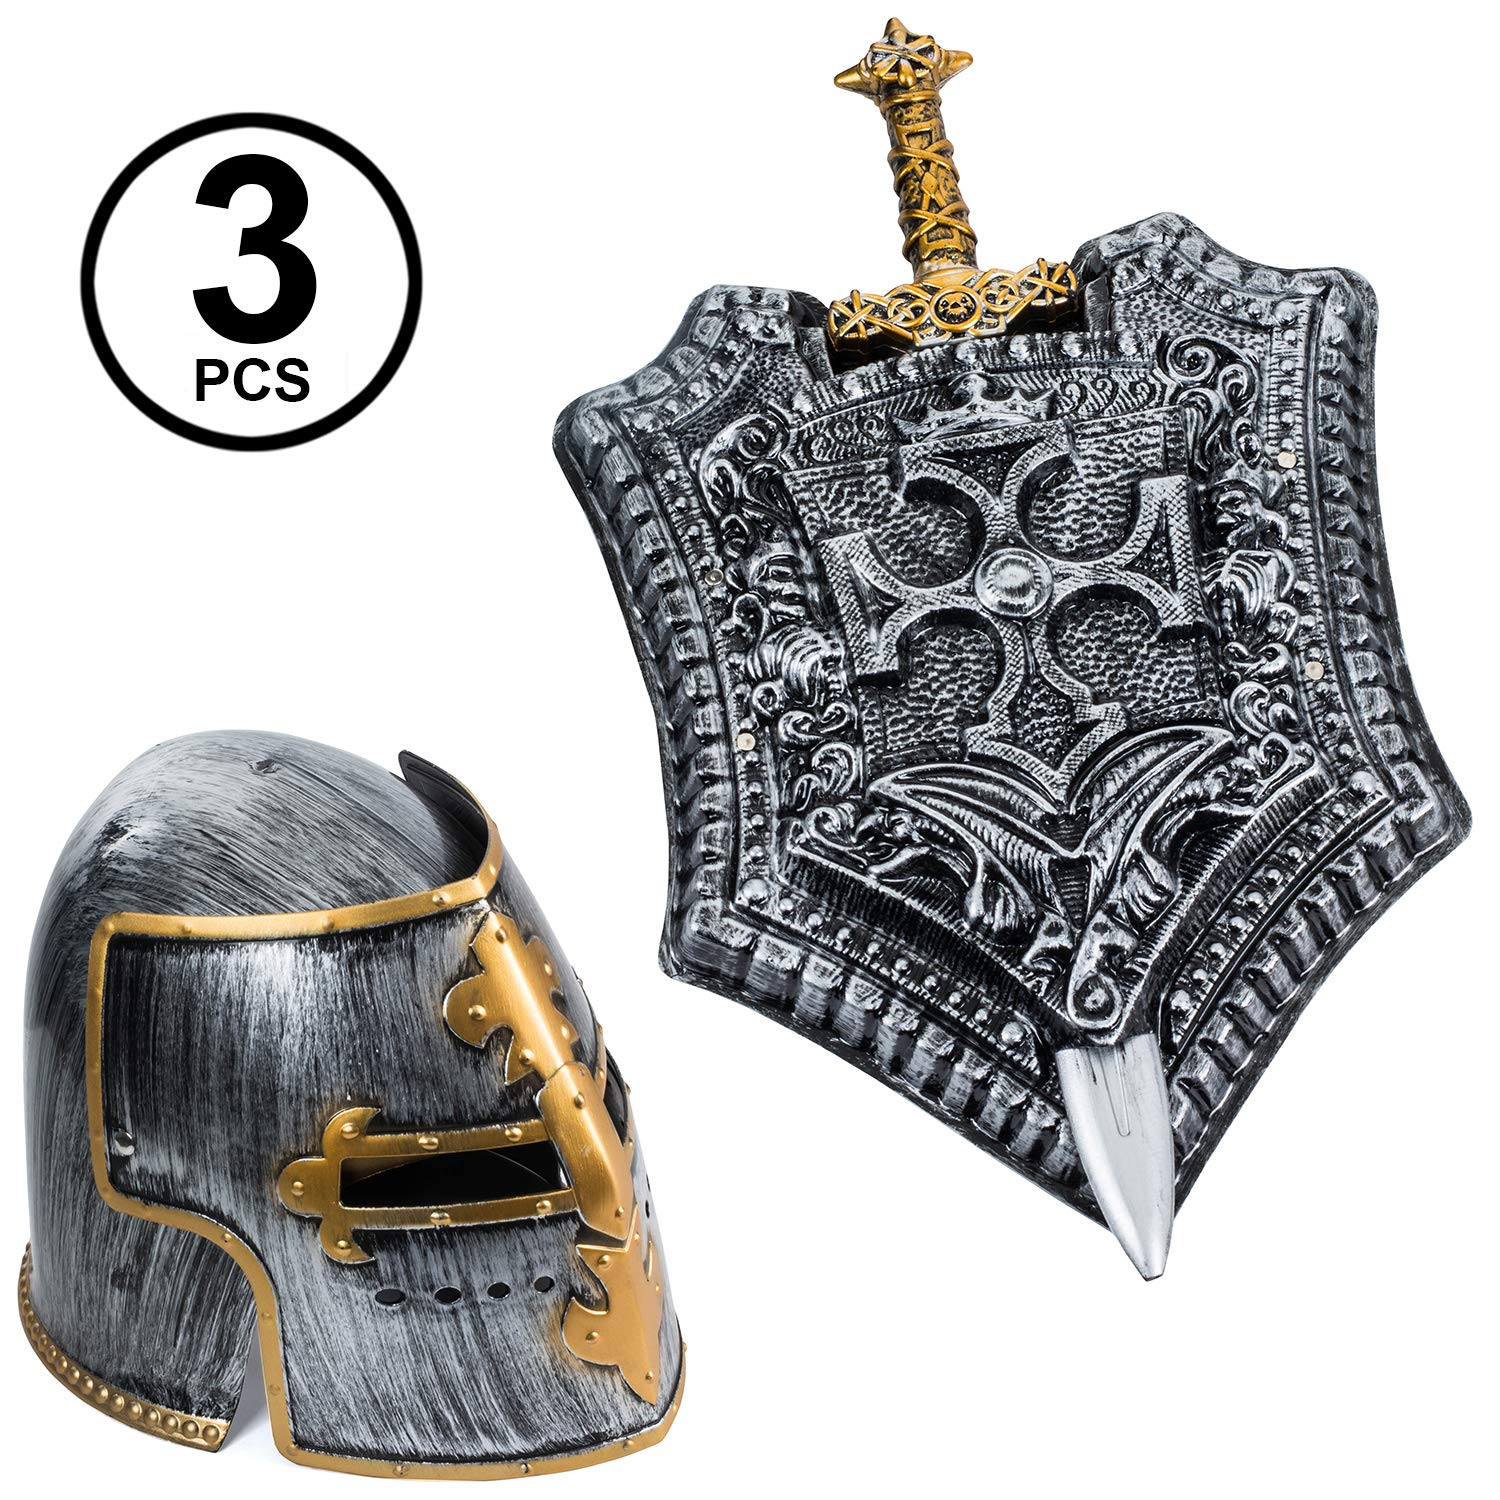 Tigerdoe Gladiator Costume - Helmet, Shield, Sword - Roman Armor - Knight - 3 Pc Set - Costumes for Men by Tigerdoe (Image #1)